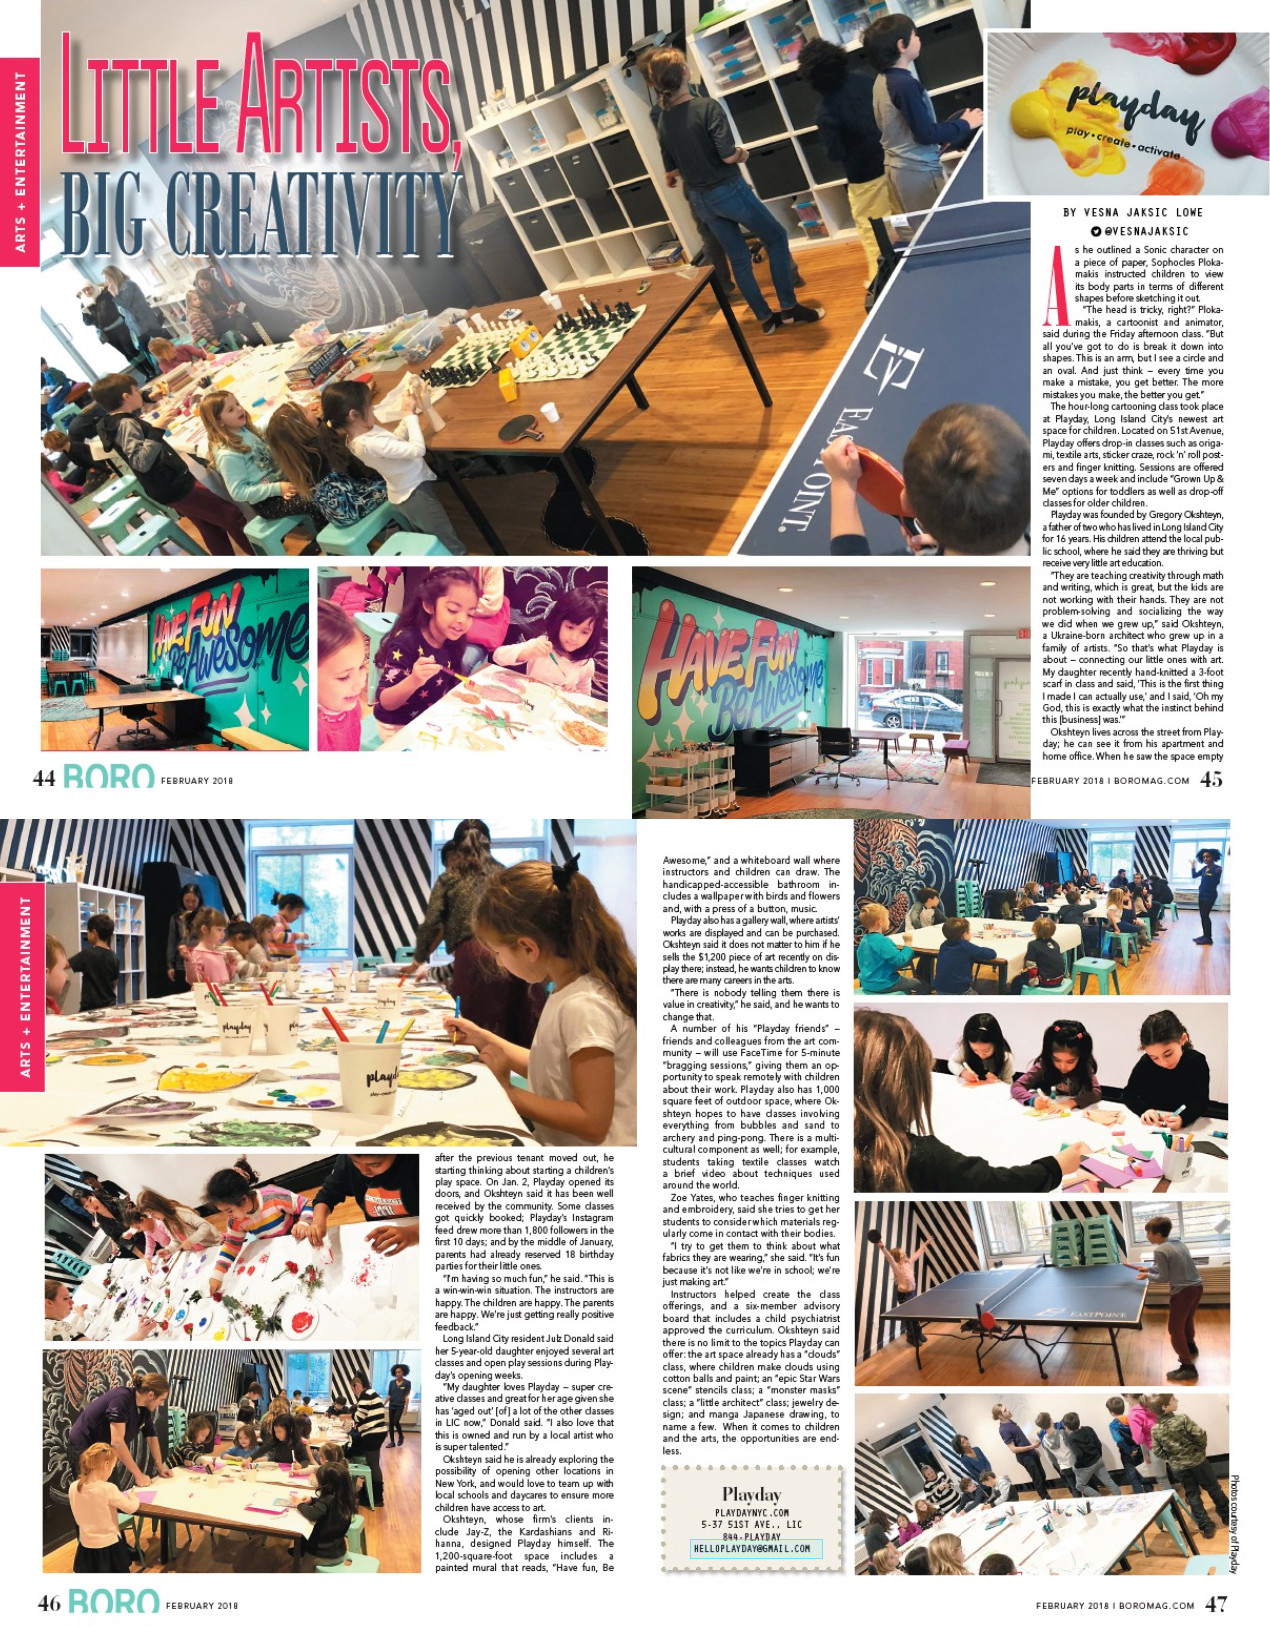 LITTLE ARTISTS BIG CREATIVITY BORO MAGAZINE FEBRAURY 2018